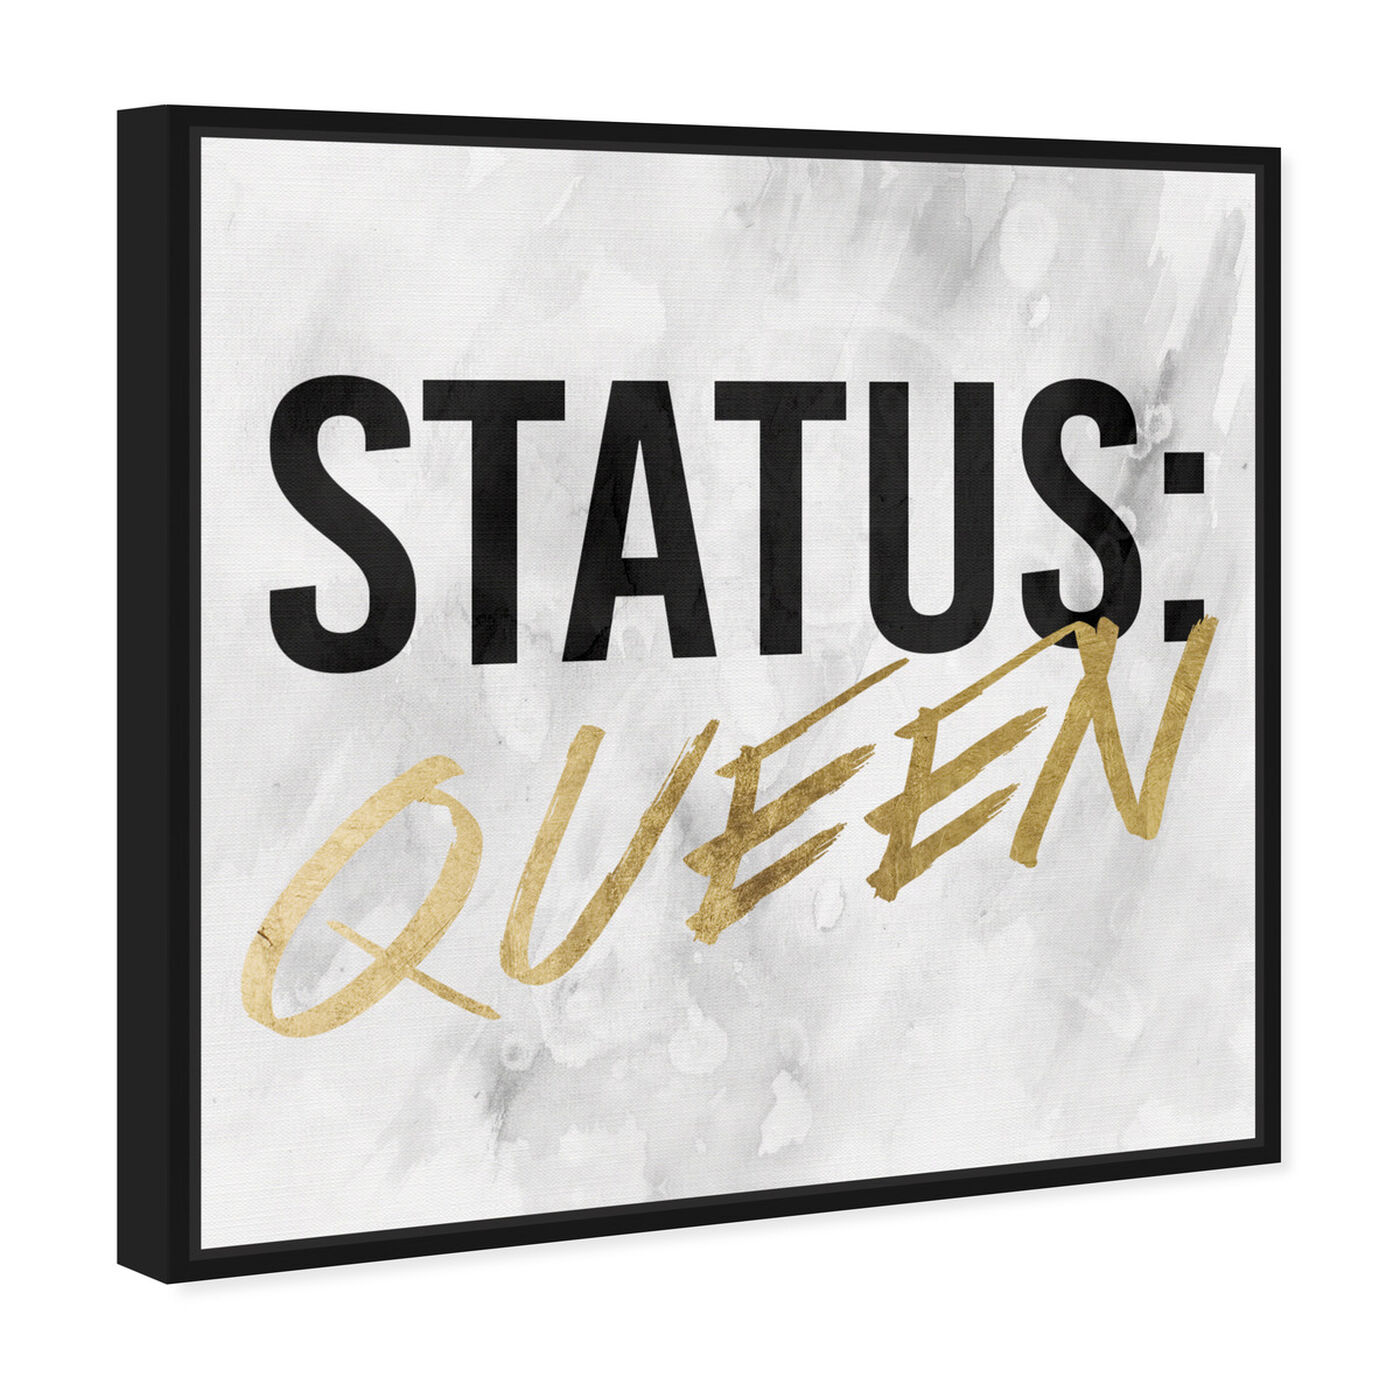 Angled view of Status Queen Gold featuring typography and quotes and empowered women quotes and sayings art.